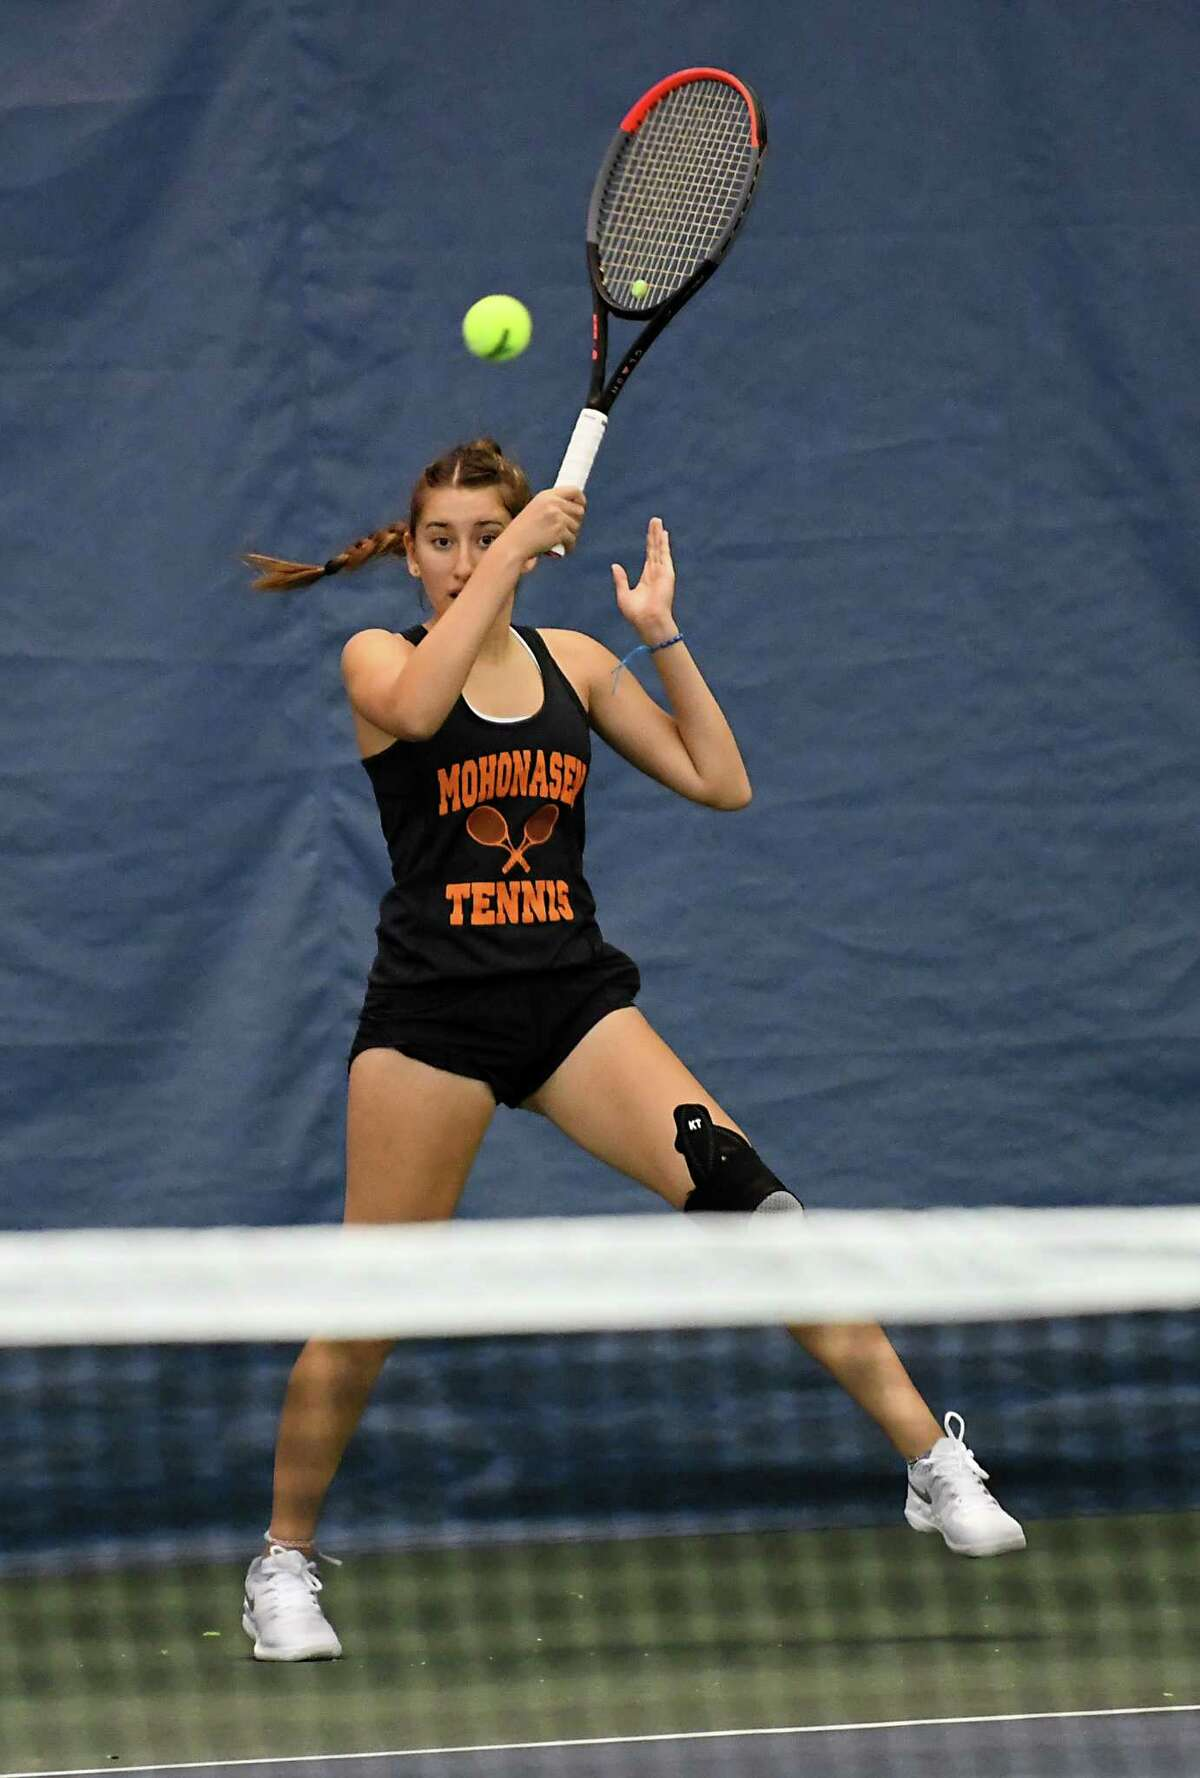 Mohonasen's Loren Cuomo, representing Schenectady, returns the ball in a singles match against Guilderland's Katrina Setchenkov during the Section II tennis finals at Sportime Schenectady on Tuesday, Oct. 22, 2019 in Schenectady, N.Y. (Lori Van Buren/Times Union)